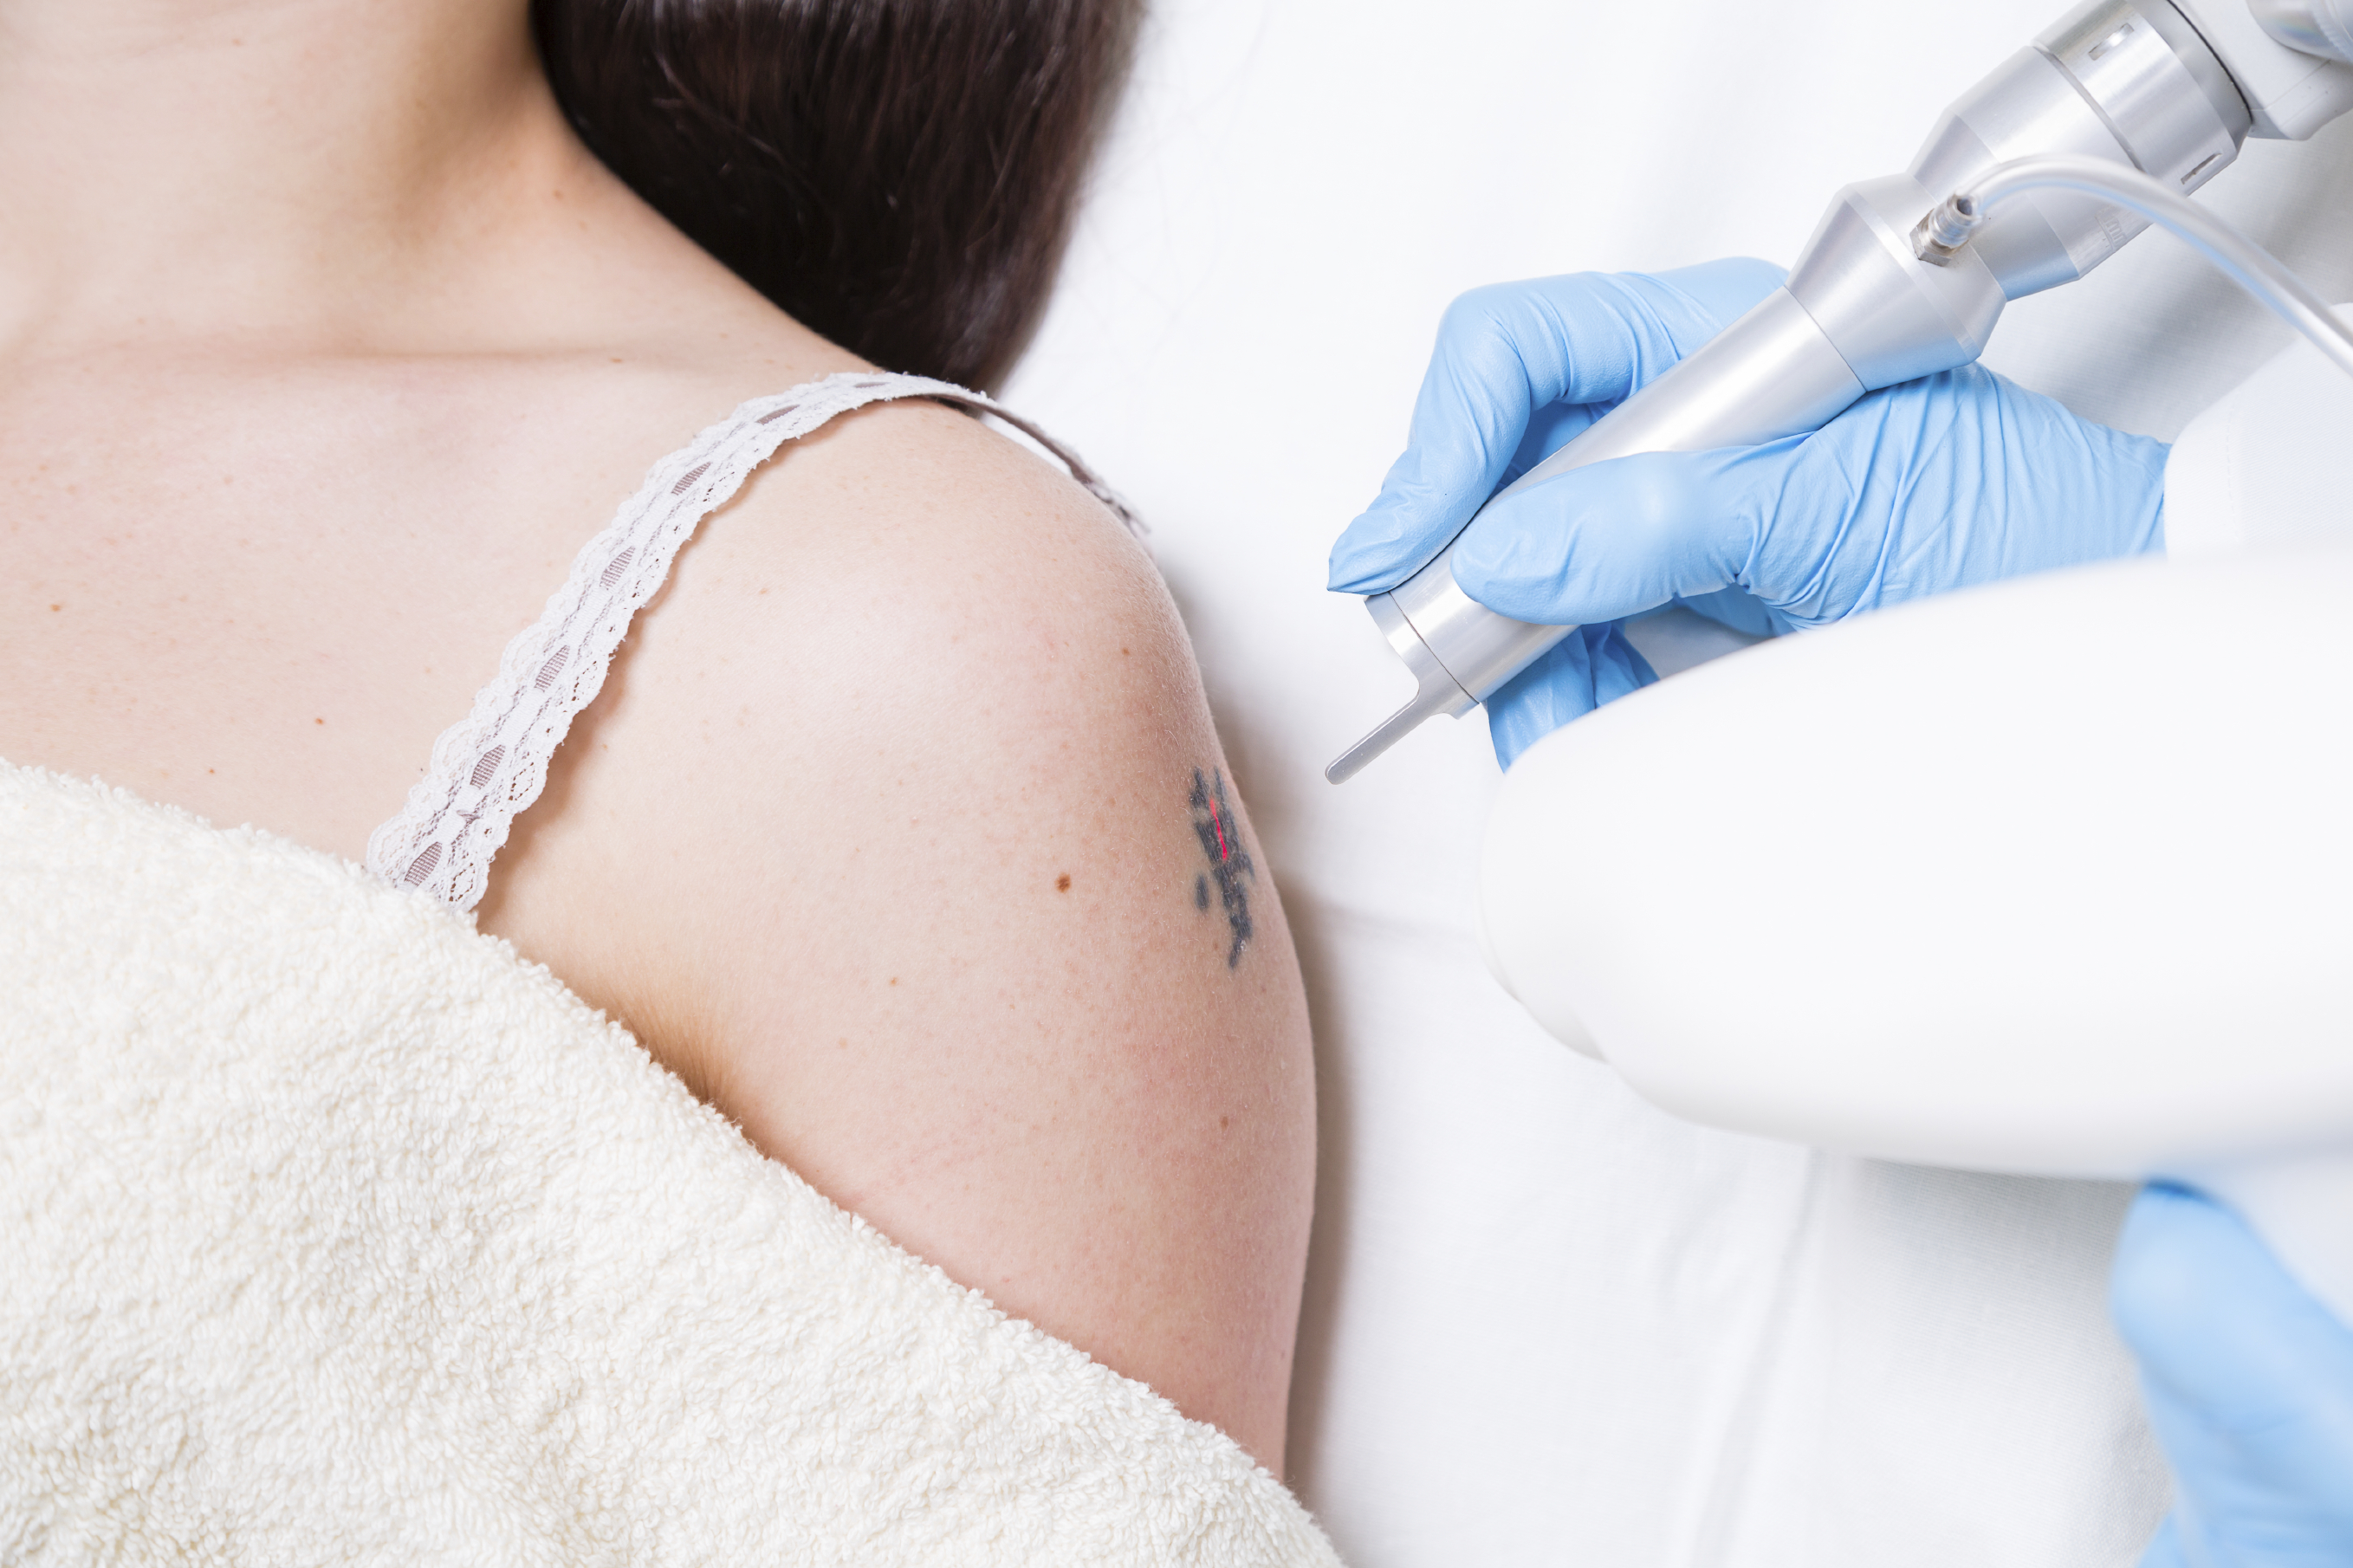 Tattoo Removal Safety: How to care for your skin before and after laser tattoo removal